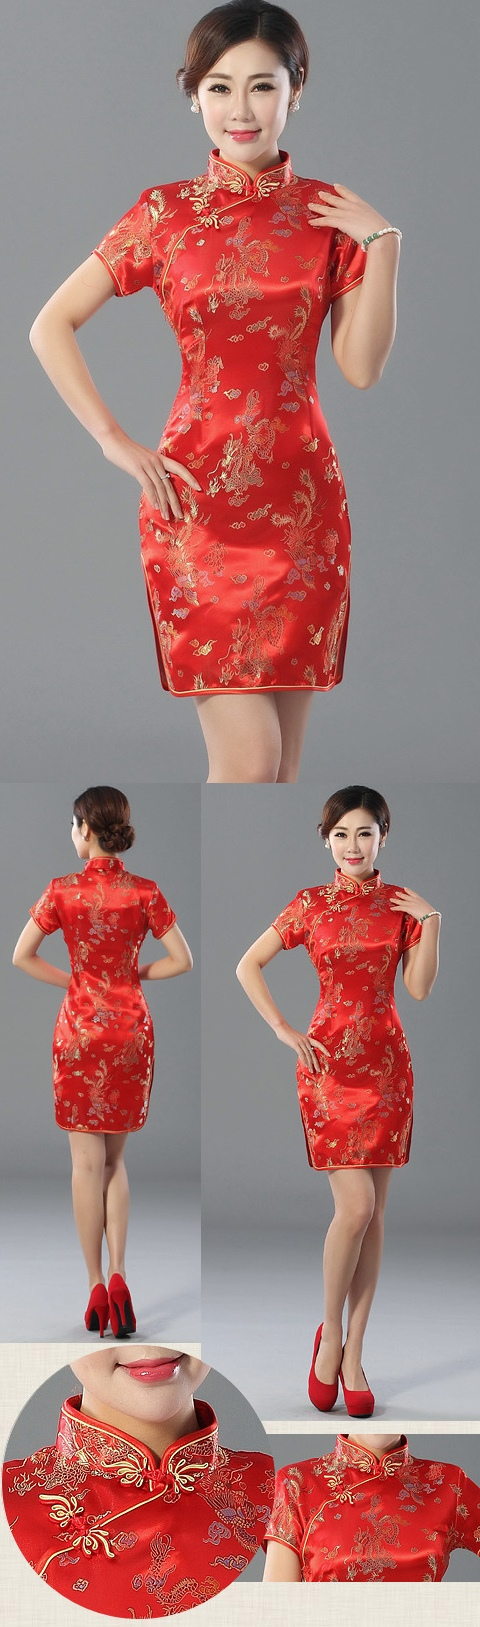 Short-sleeve Short Brocade Cheongsam Dress